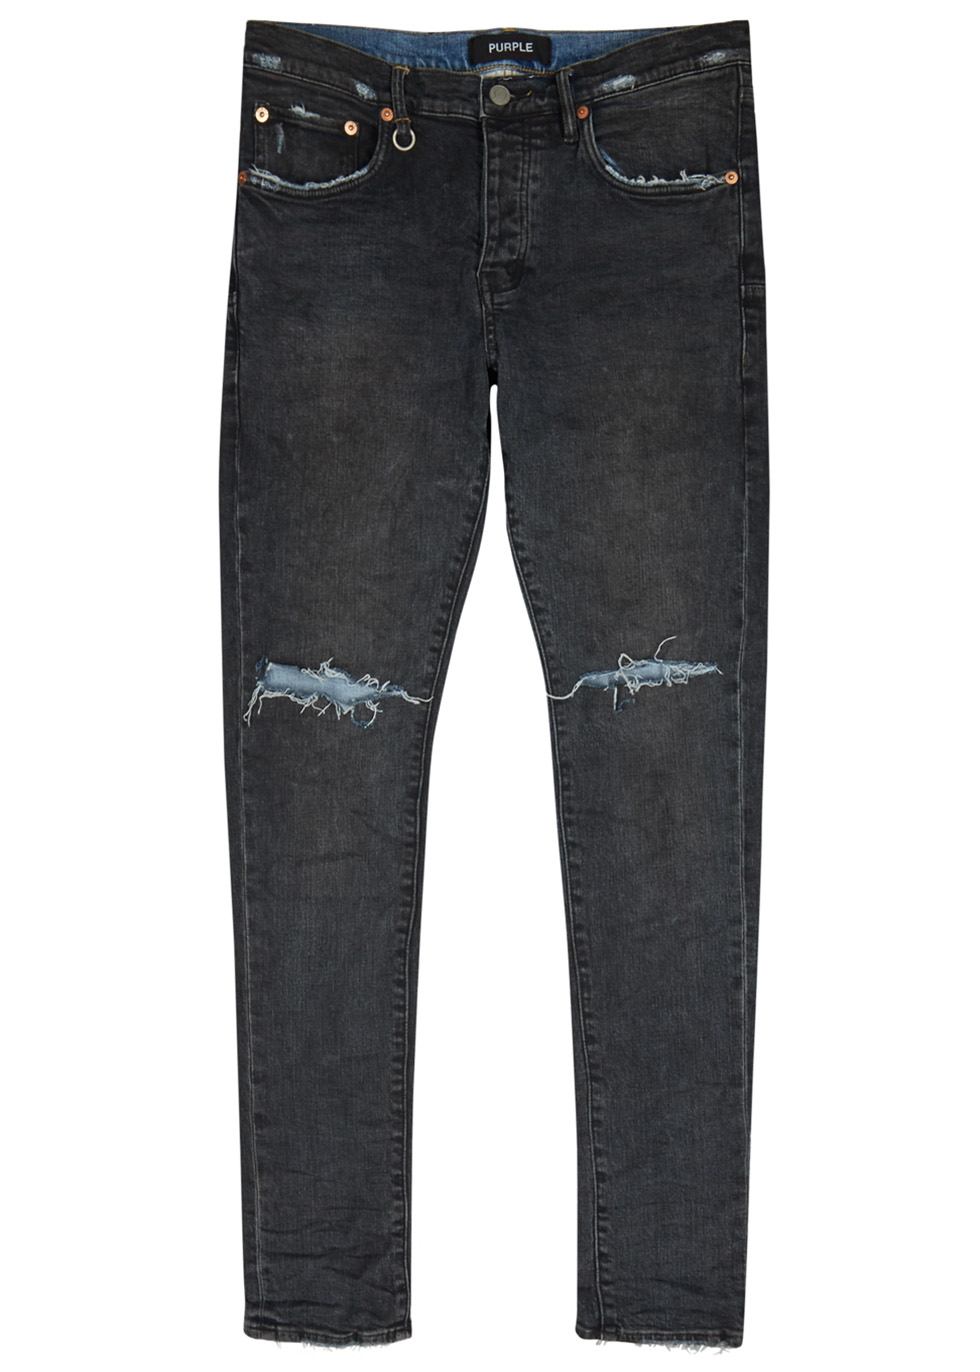 PURPLE 001 Distressed Skinny Jeans in Black